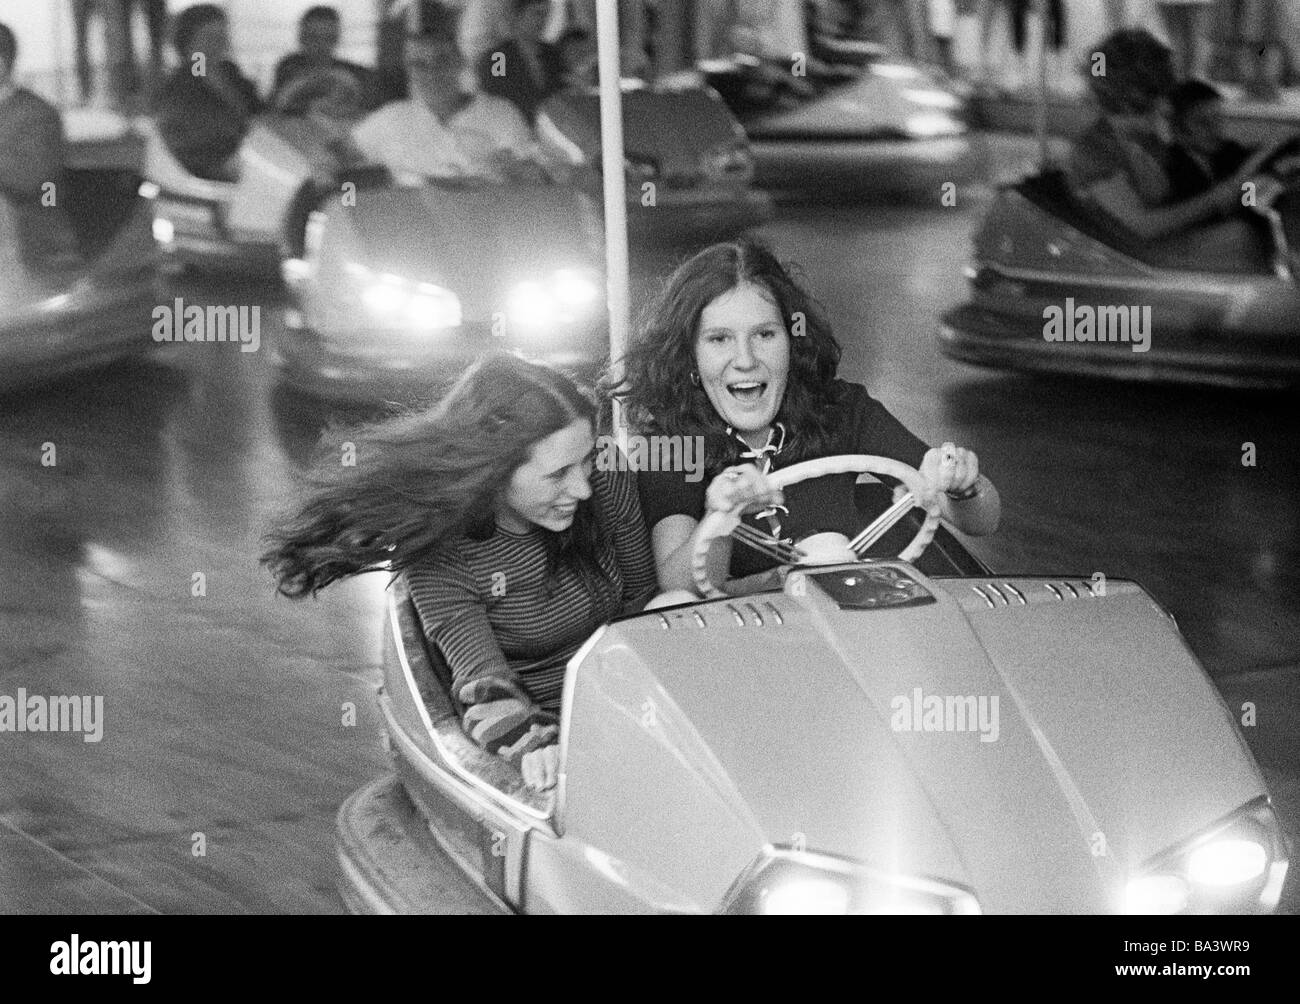 Seventies, black and white photo, people, two young girls in a dodgem car, kermess, funfair, parish fair, aged 18 - Stock Image